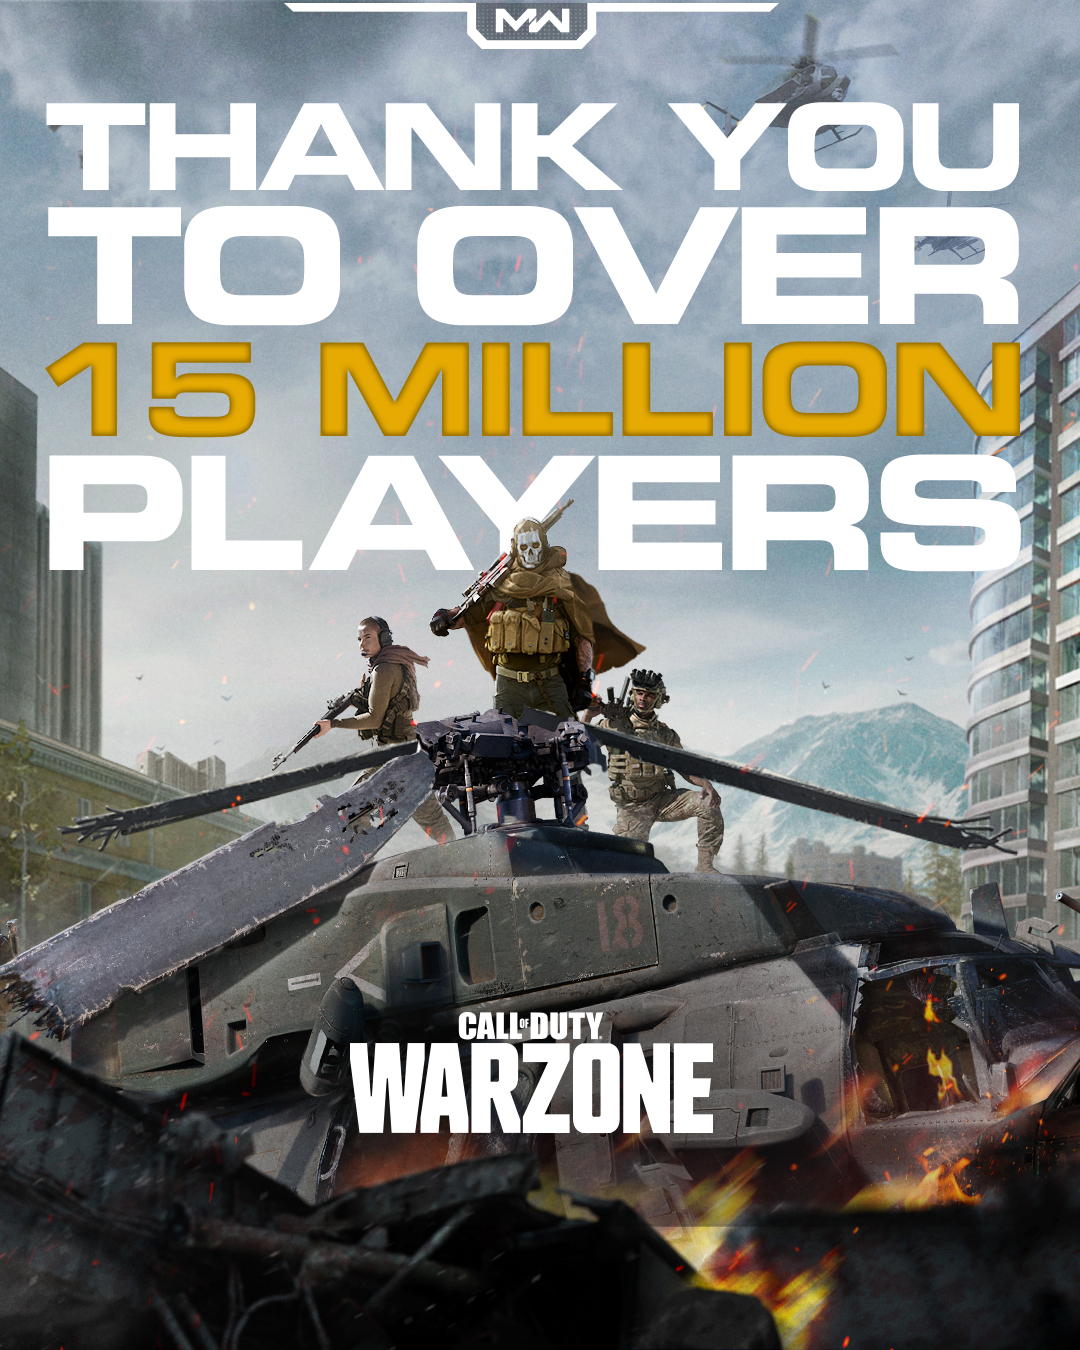 Call of Duty: Warzone hits 15 million players after three days